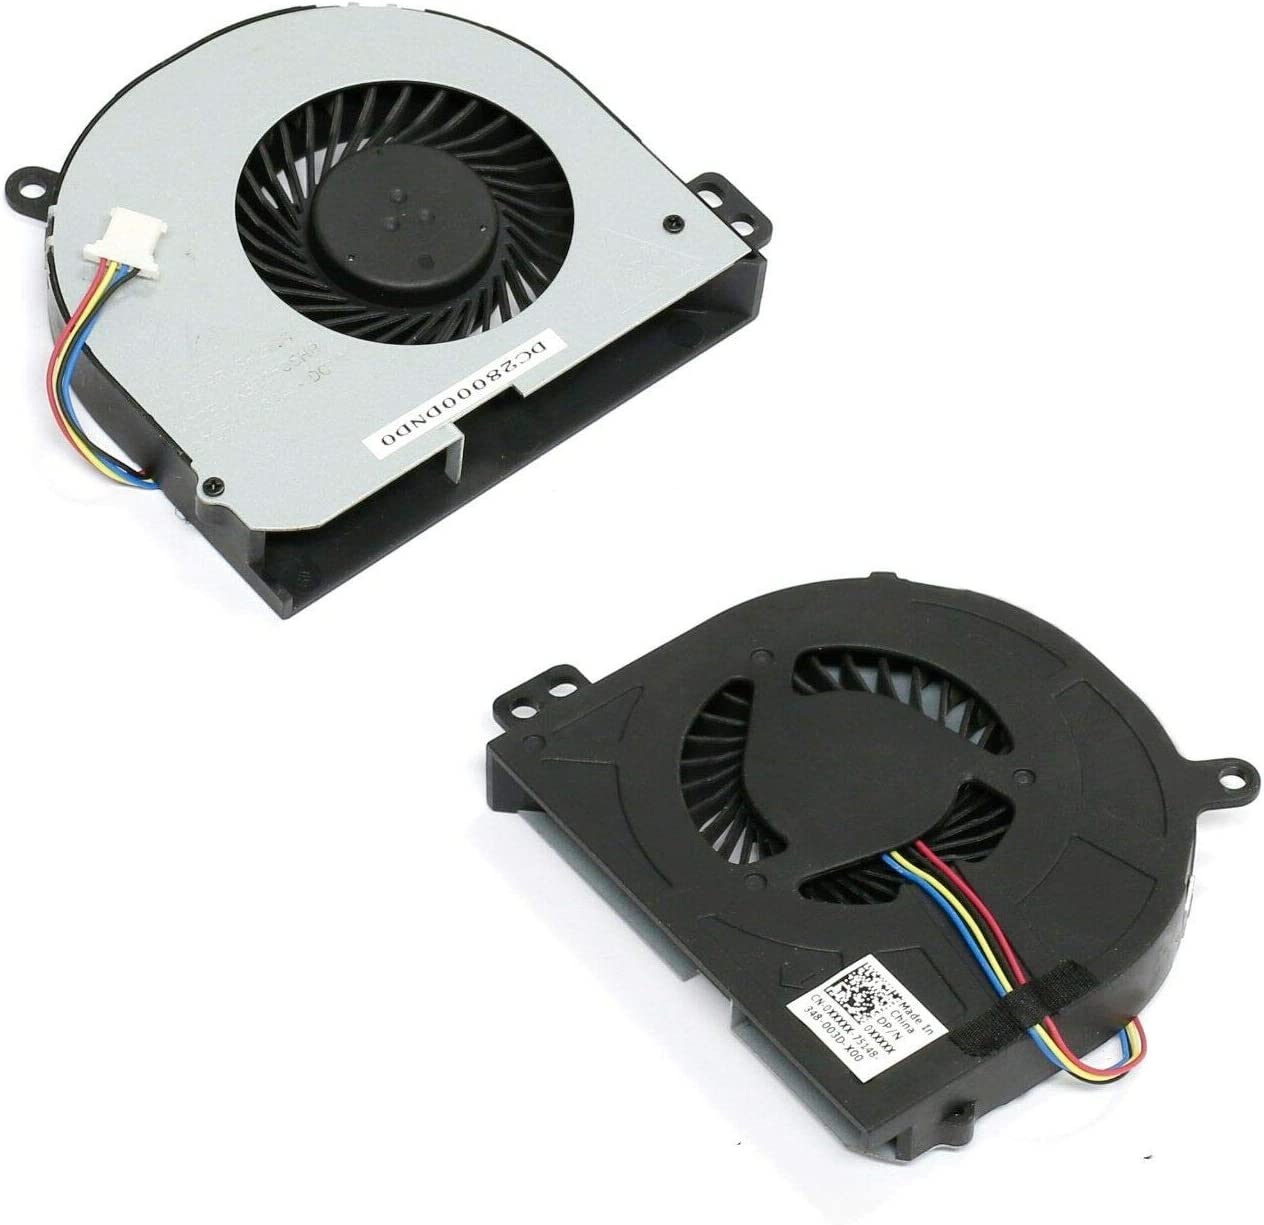 CAQL New Cooling Fan for Dell Latitude E5440 E5540, P/N: 087XFX 87XFX MF60090V1-C620-S9A DC28000DNS0 DC28000DNSL KSB0505HB-DC10, (4-Wires) 4-pins Connector